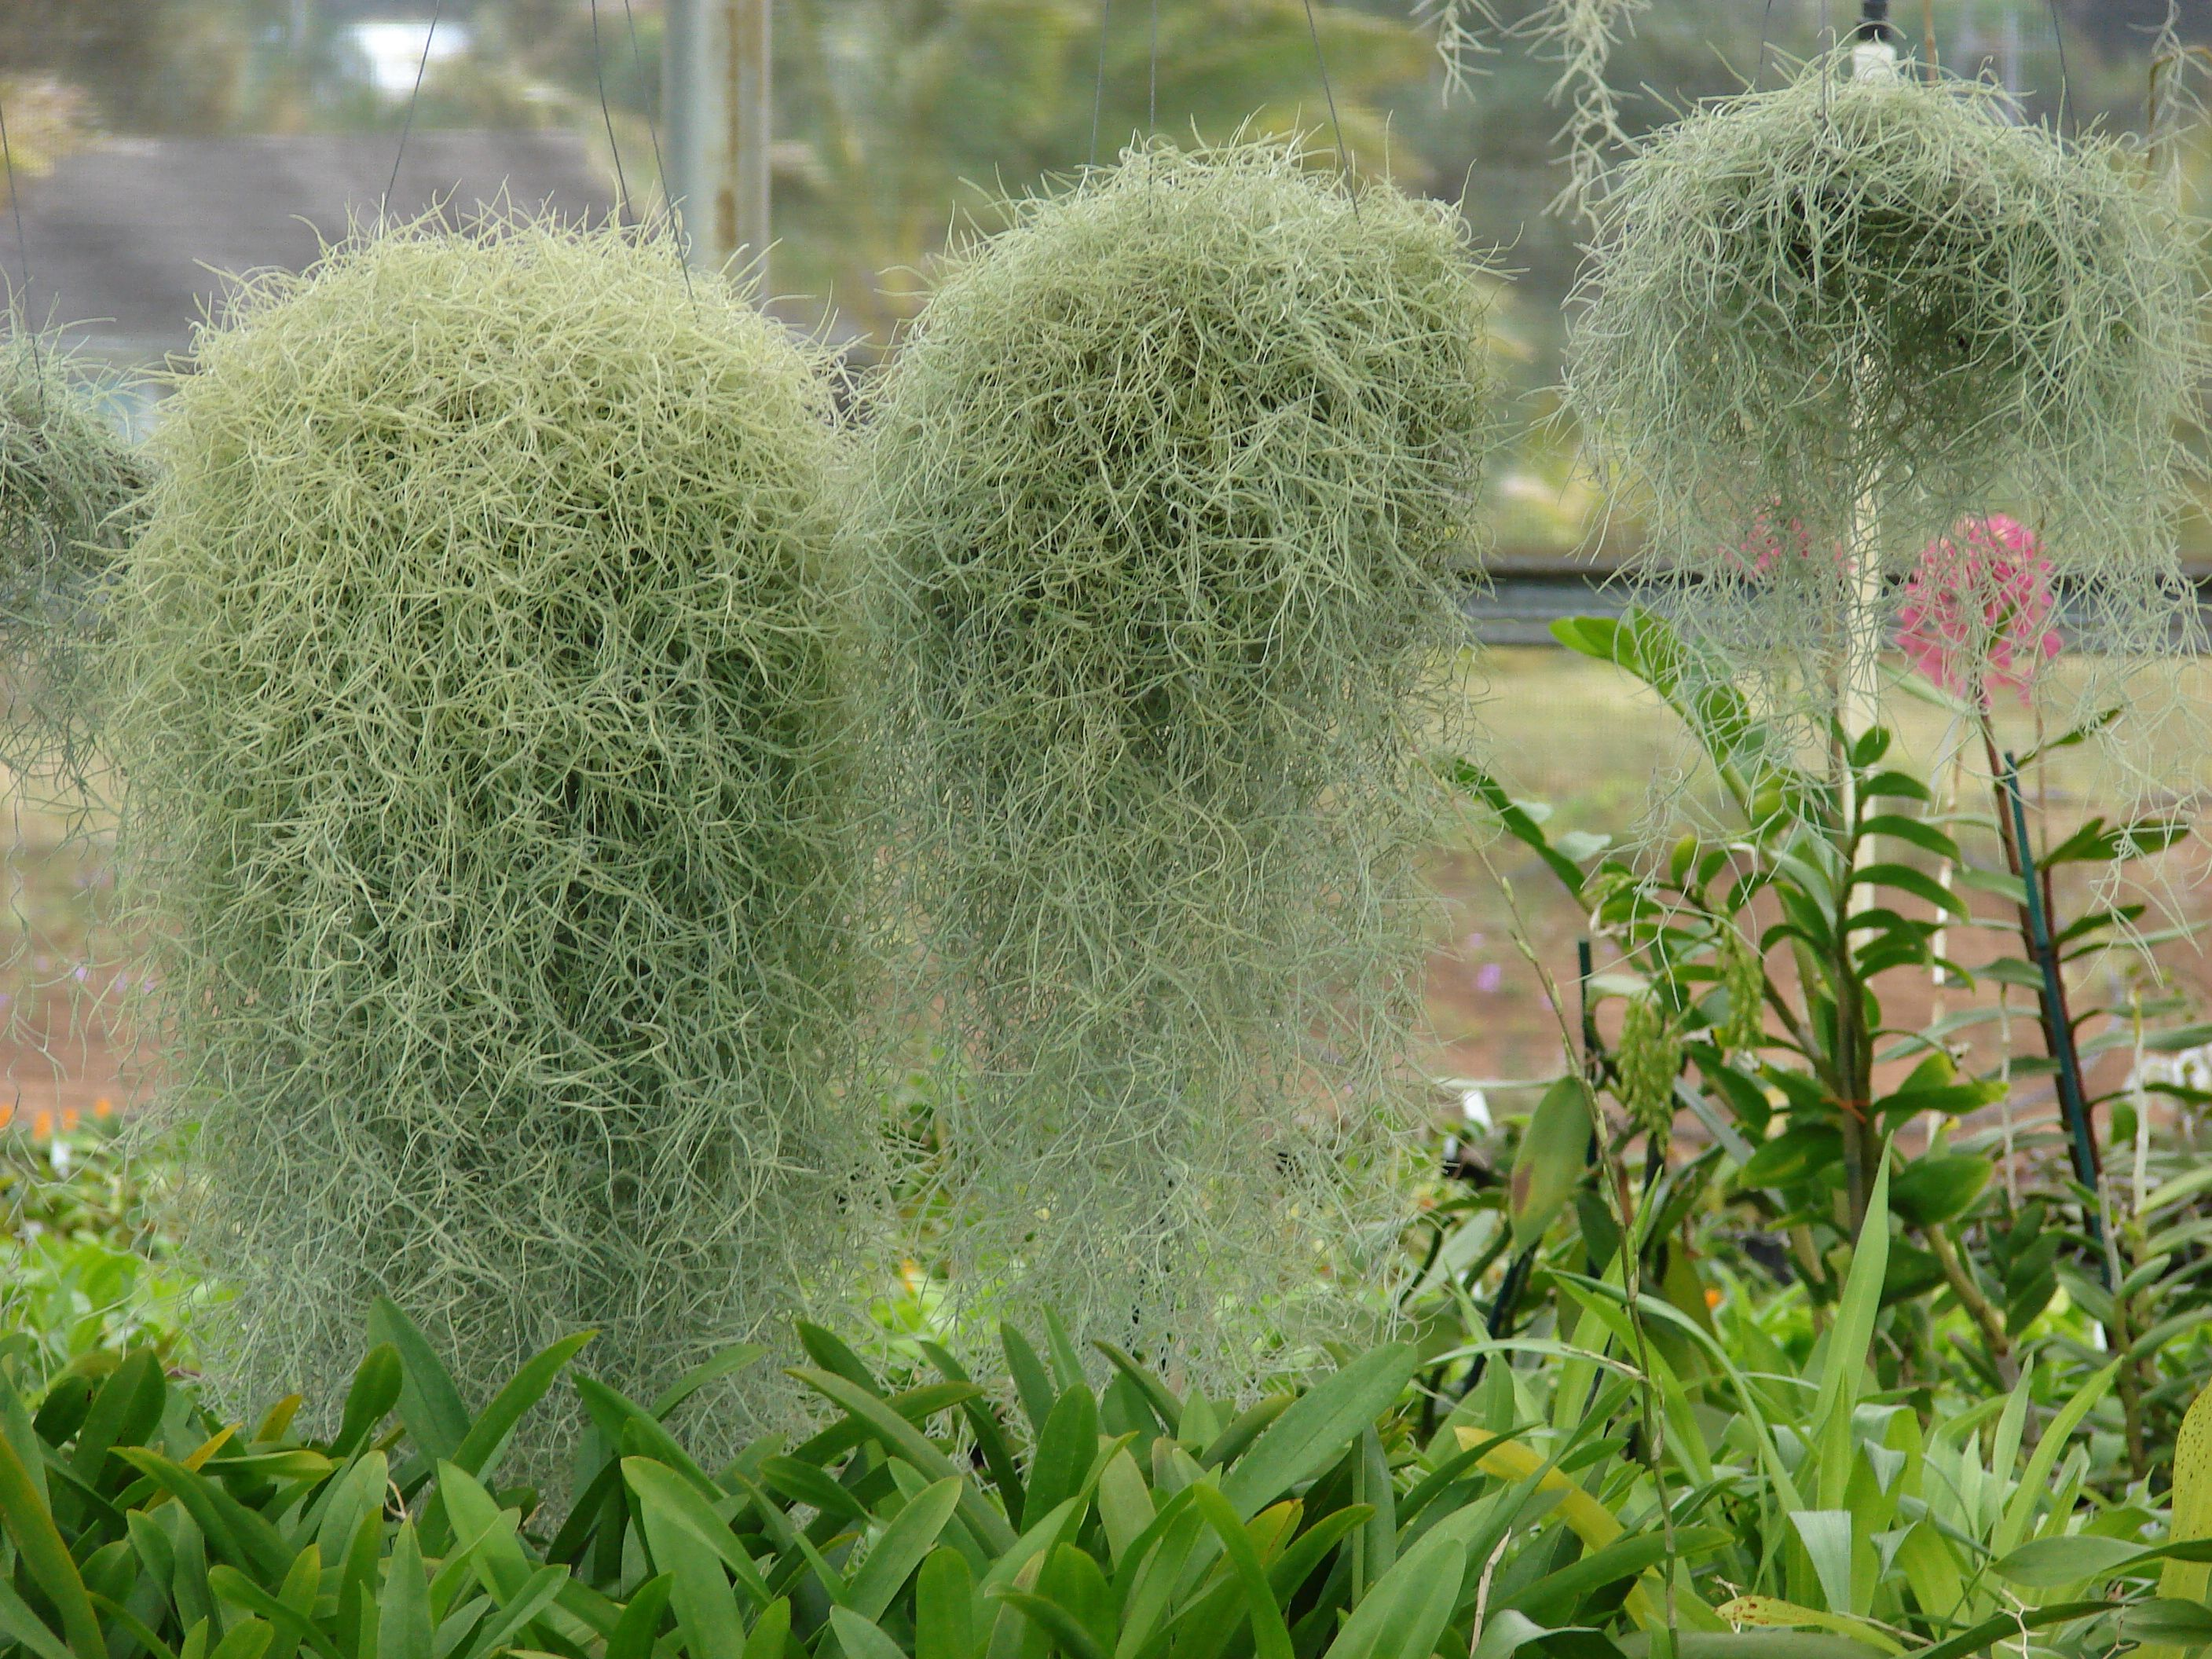 Spanish moss for crafts - Find This Pin And More On Container Gardening Spanish Moss